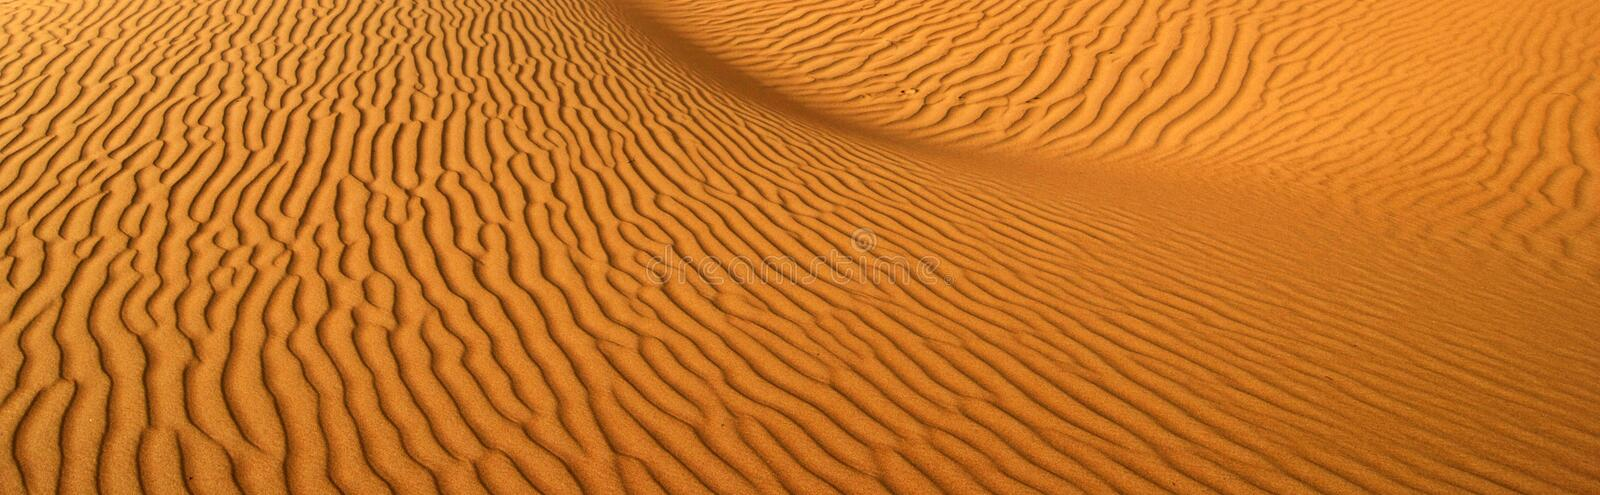 Download Abstract: Waves In The Sand Stock Photo - Image: 22012130